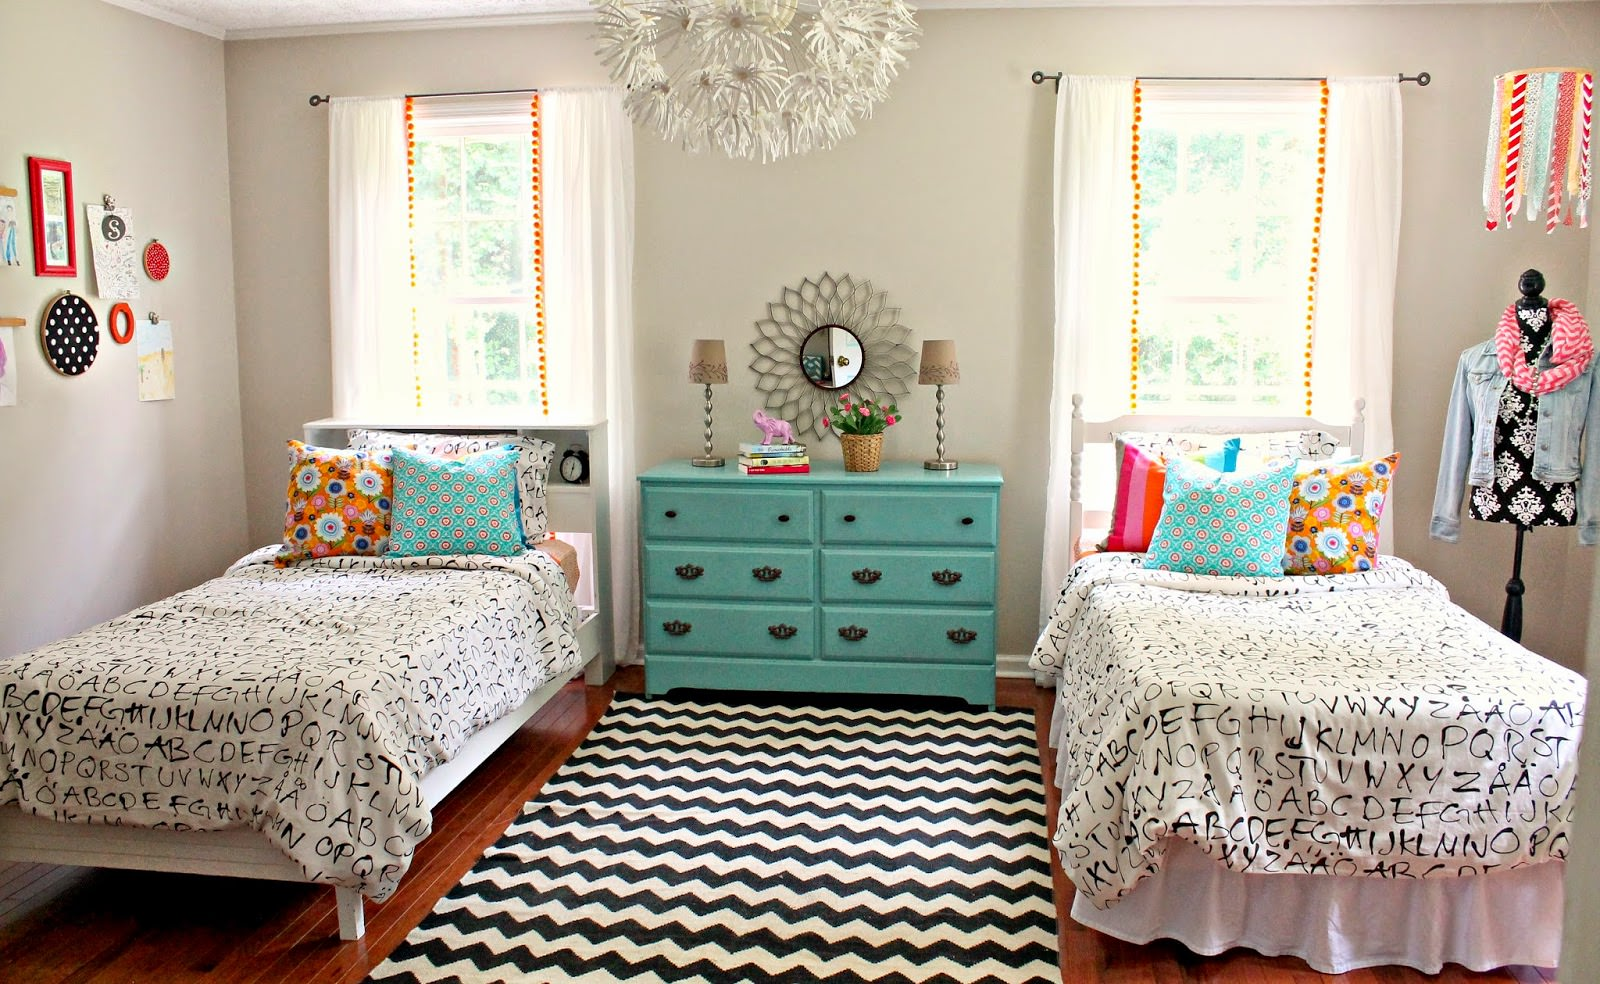 Inspiration monday linky party your homebased mom - Special cool girls room ...